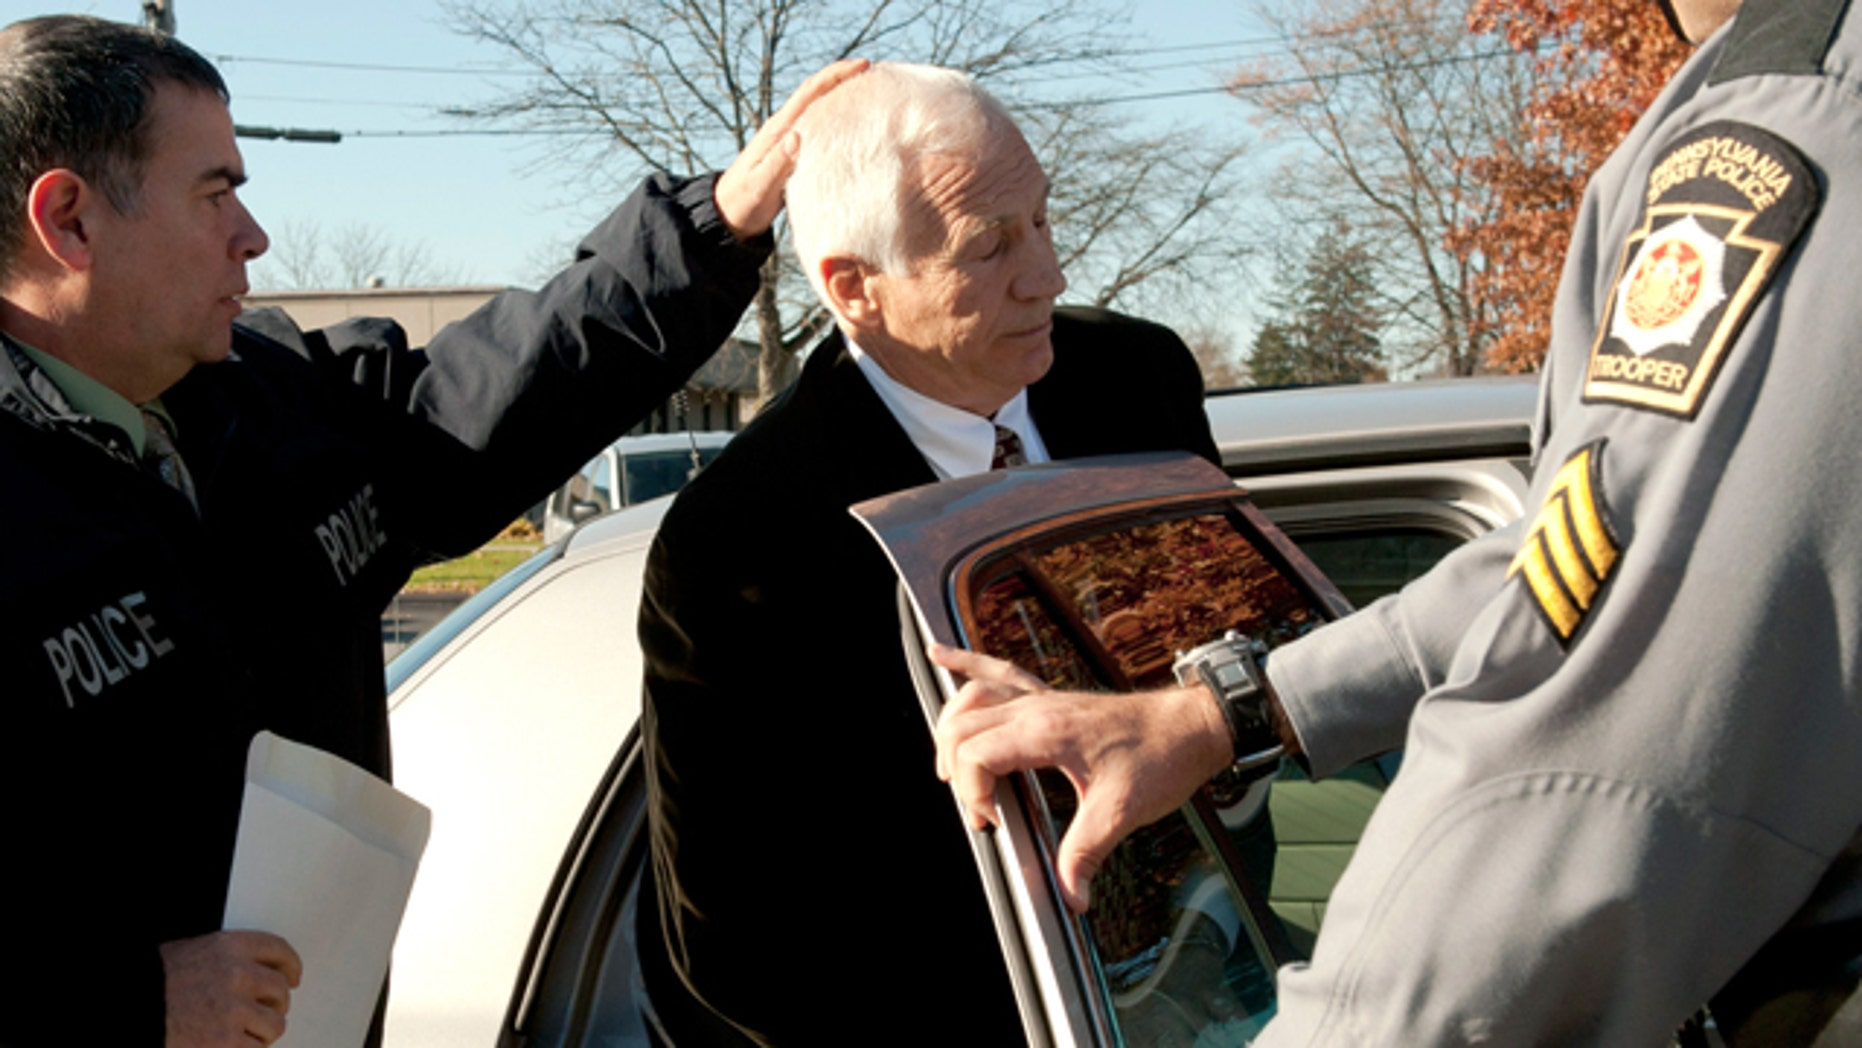 """Nov. 5, 2011: In this photo provided by the Pennsylvania Office of Attorney General, former Penn State football defensive coordinator Gerald """"Jerry"""" Sandusky, center, is placed in a police car in Bellefonte, Pa. to be taken to the office of a Centre County Magisterial District judge."""